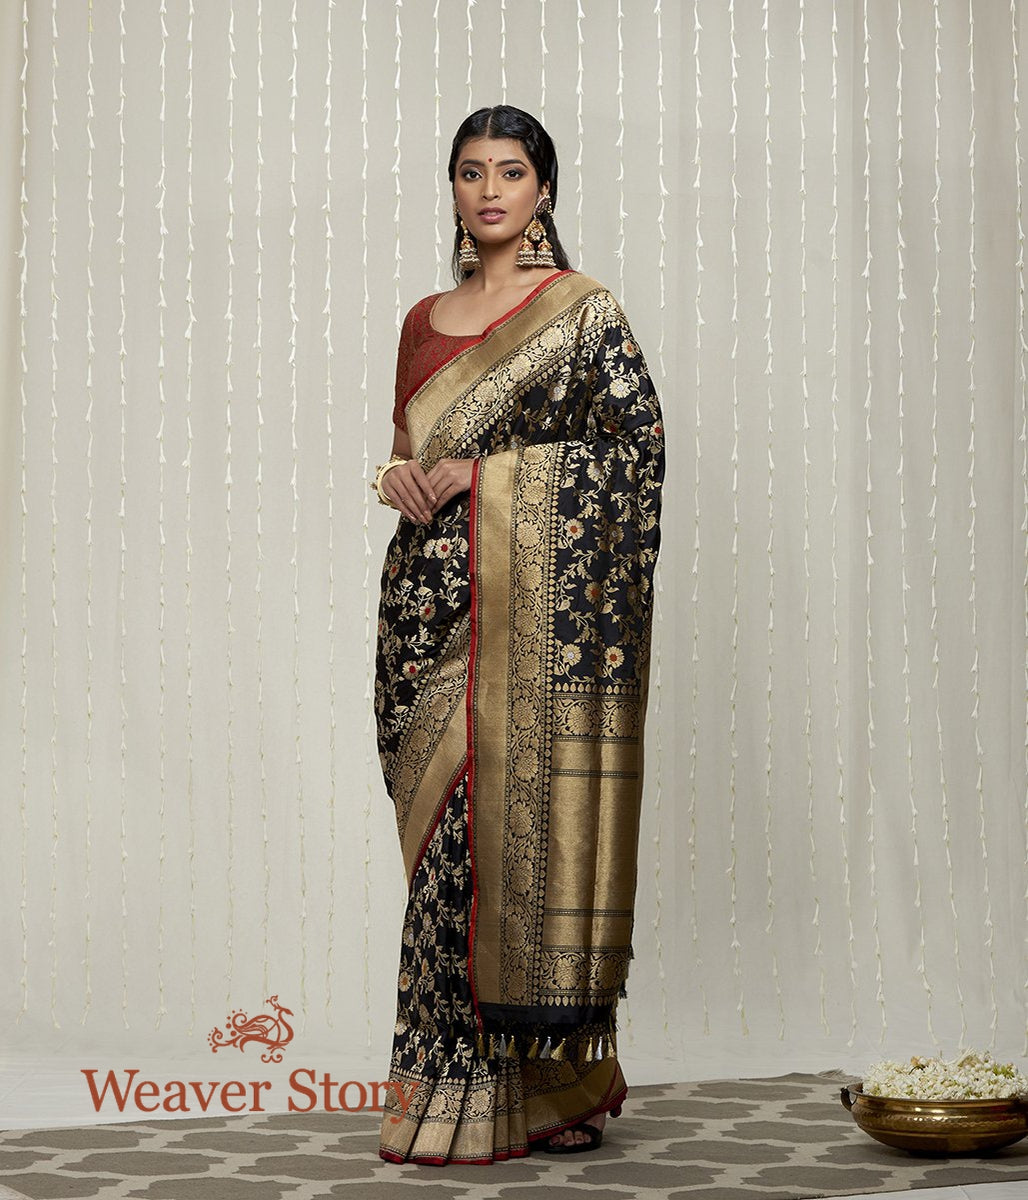 Handwoven Black Sona Rupa Kadhwa Jangla Saree with Meenakari